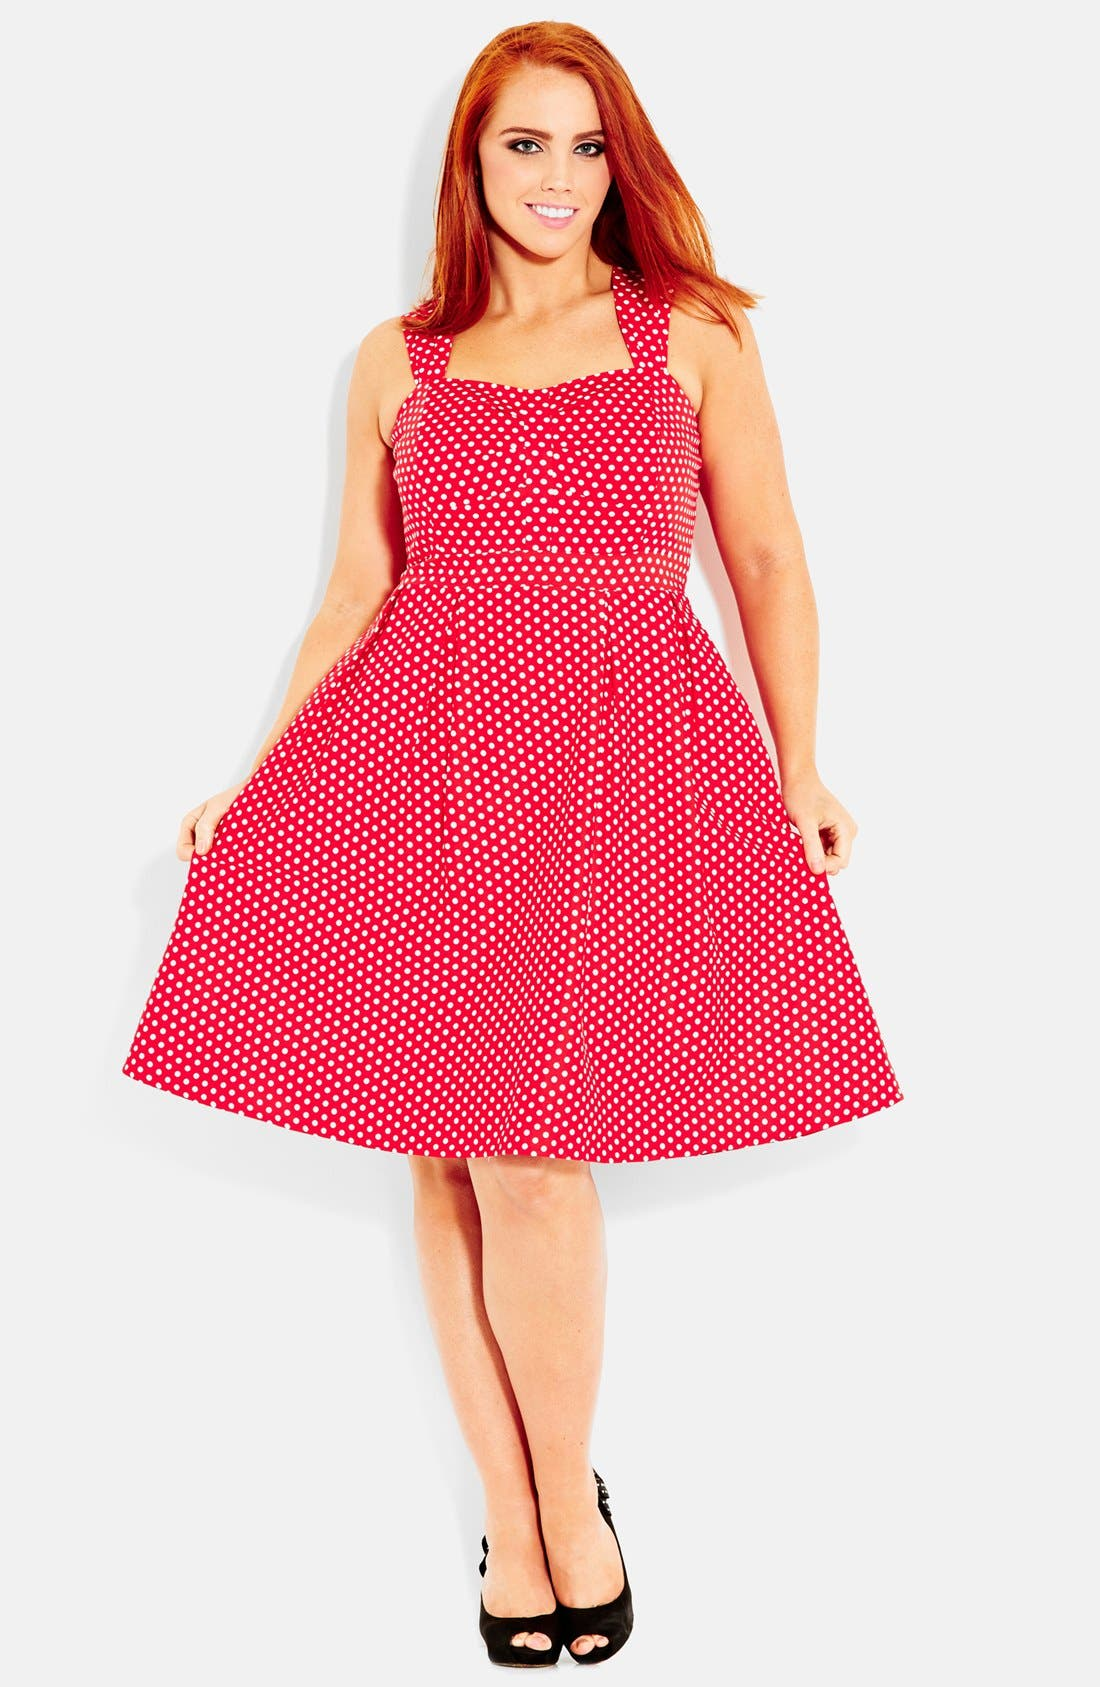 Alternate Image 1 Selected - City Chic 'Spotty Fun' Fit & Flare Dress (Plus Size)